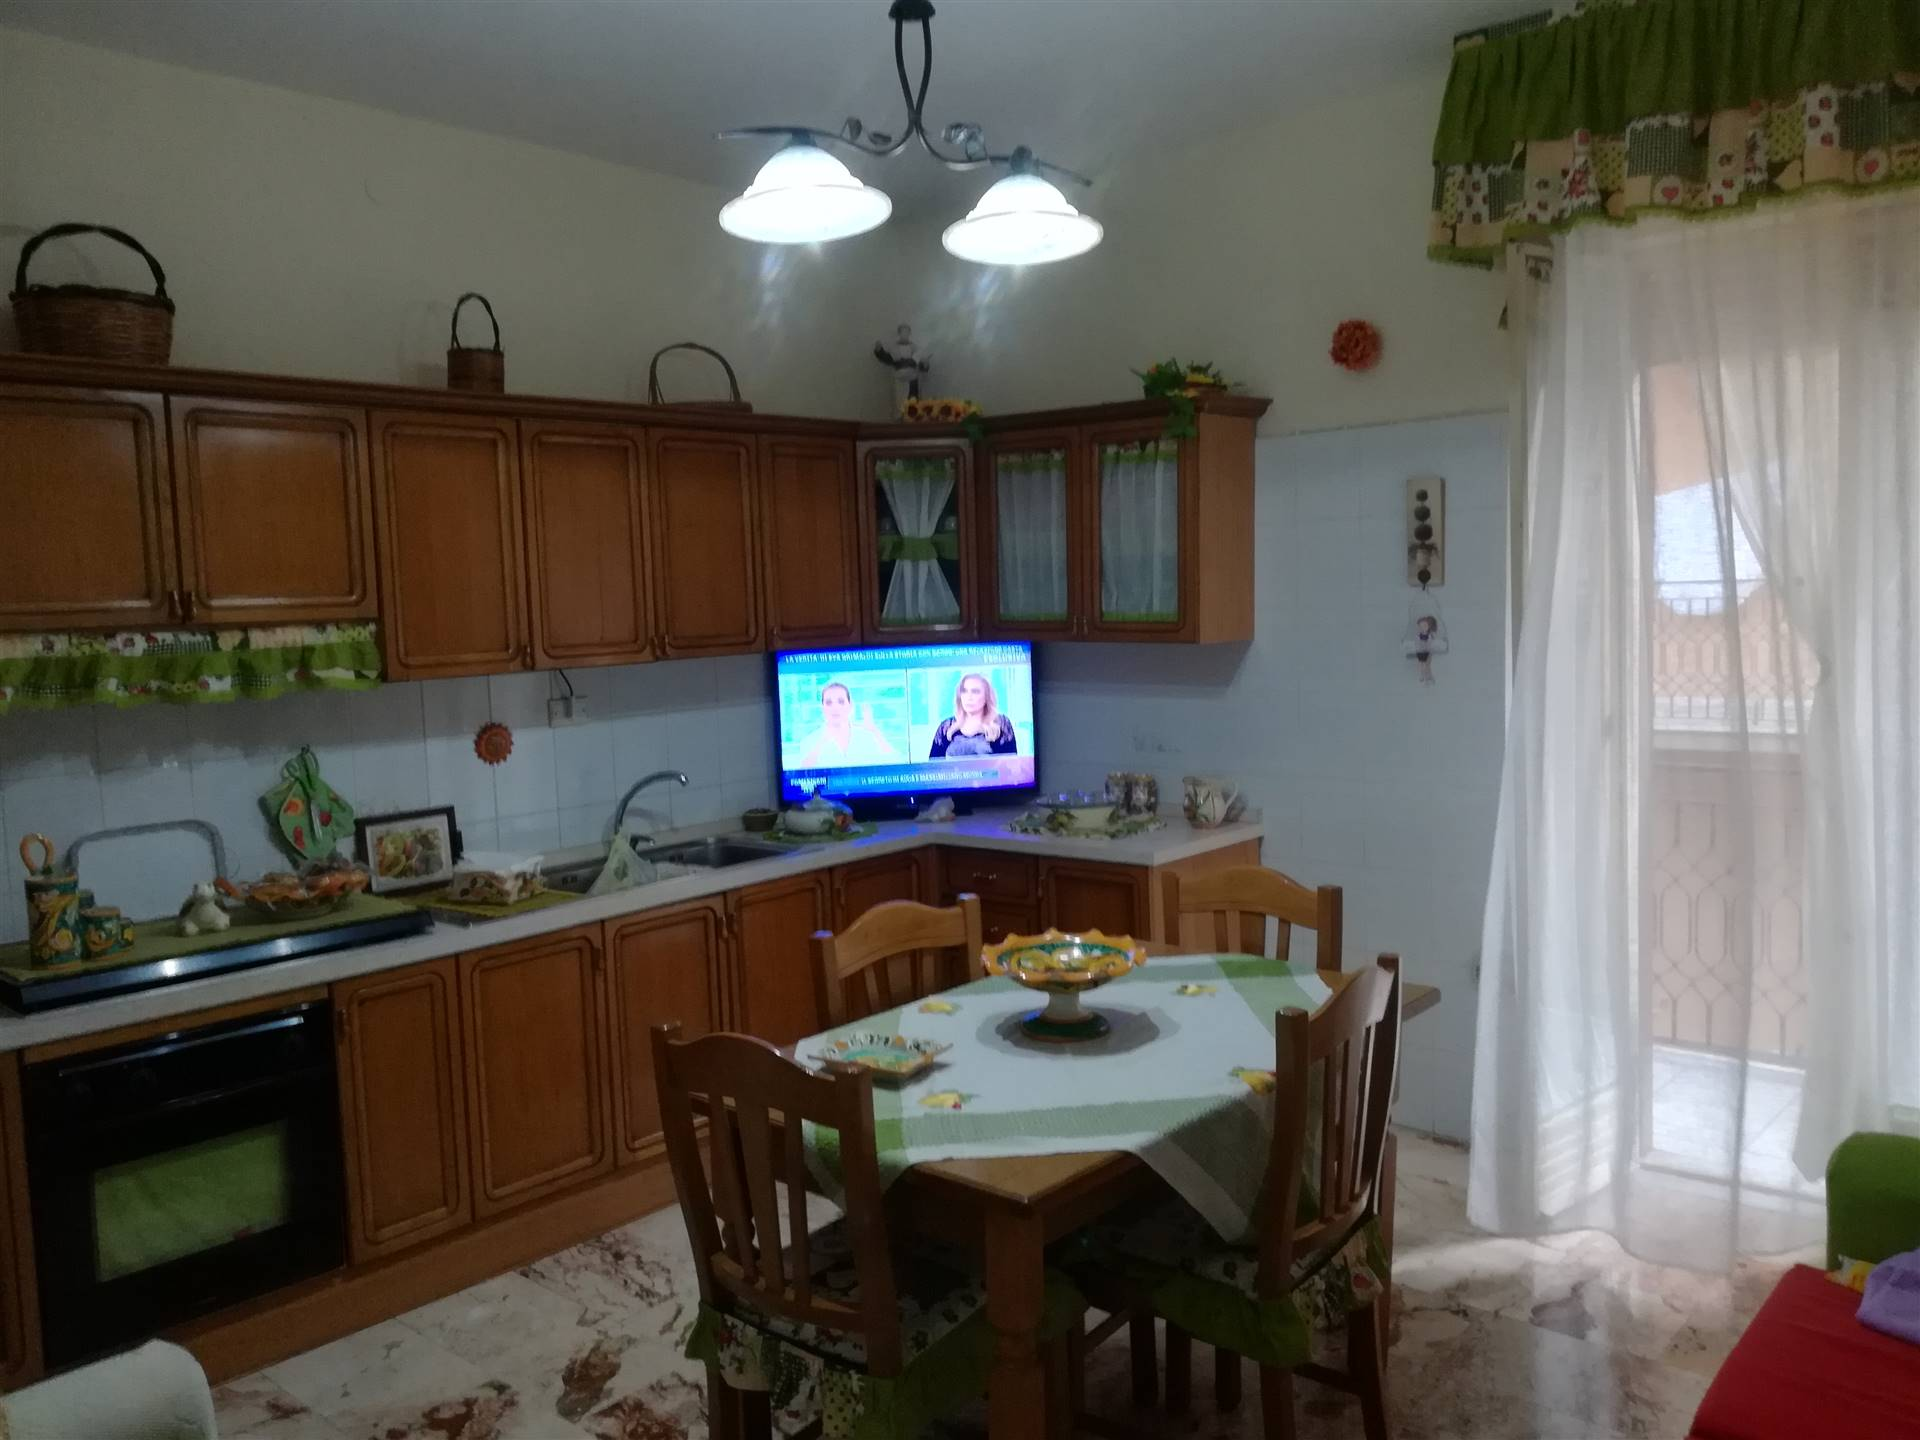 CORSO ITALIA, LICATA, Apartment for sale of 100 Sq. mt., Habitable, Energetic class: G, placed at 2°, composed by: 4 Rooms, Separate kitchen, 3